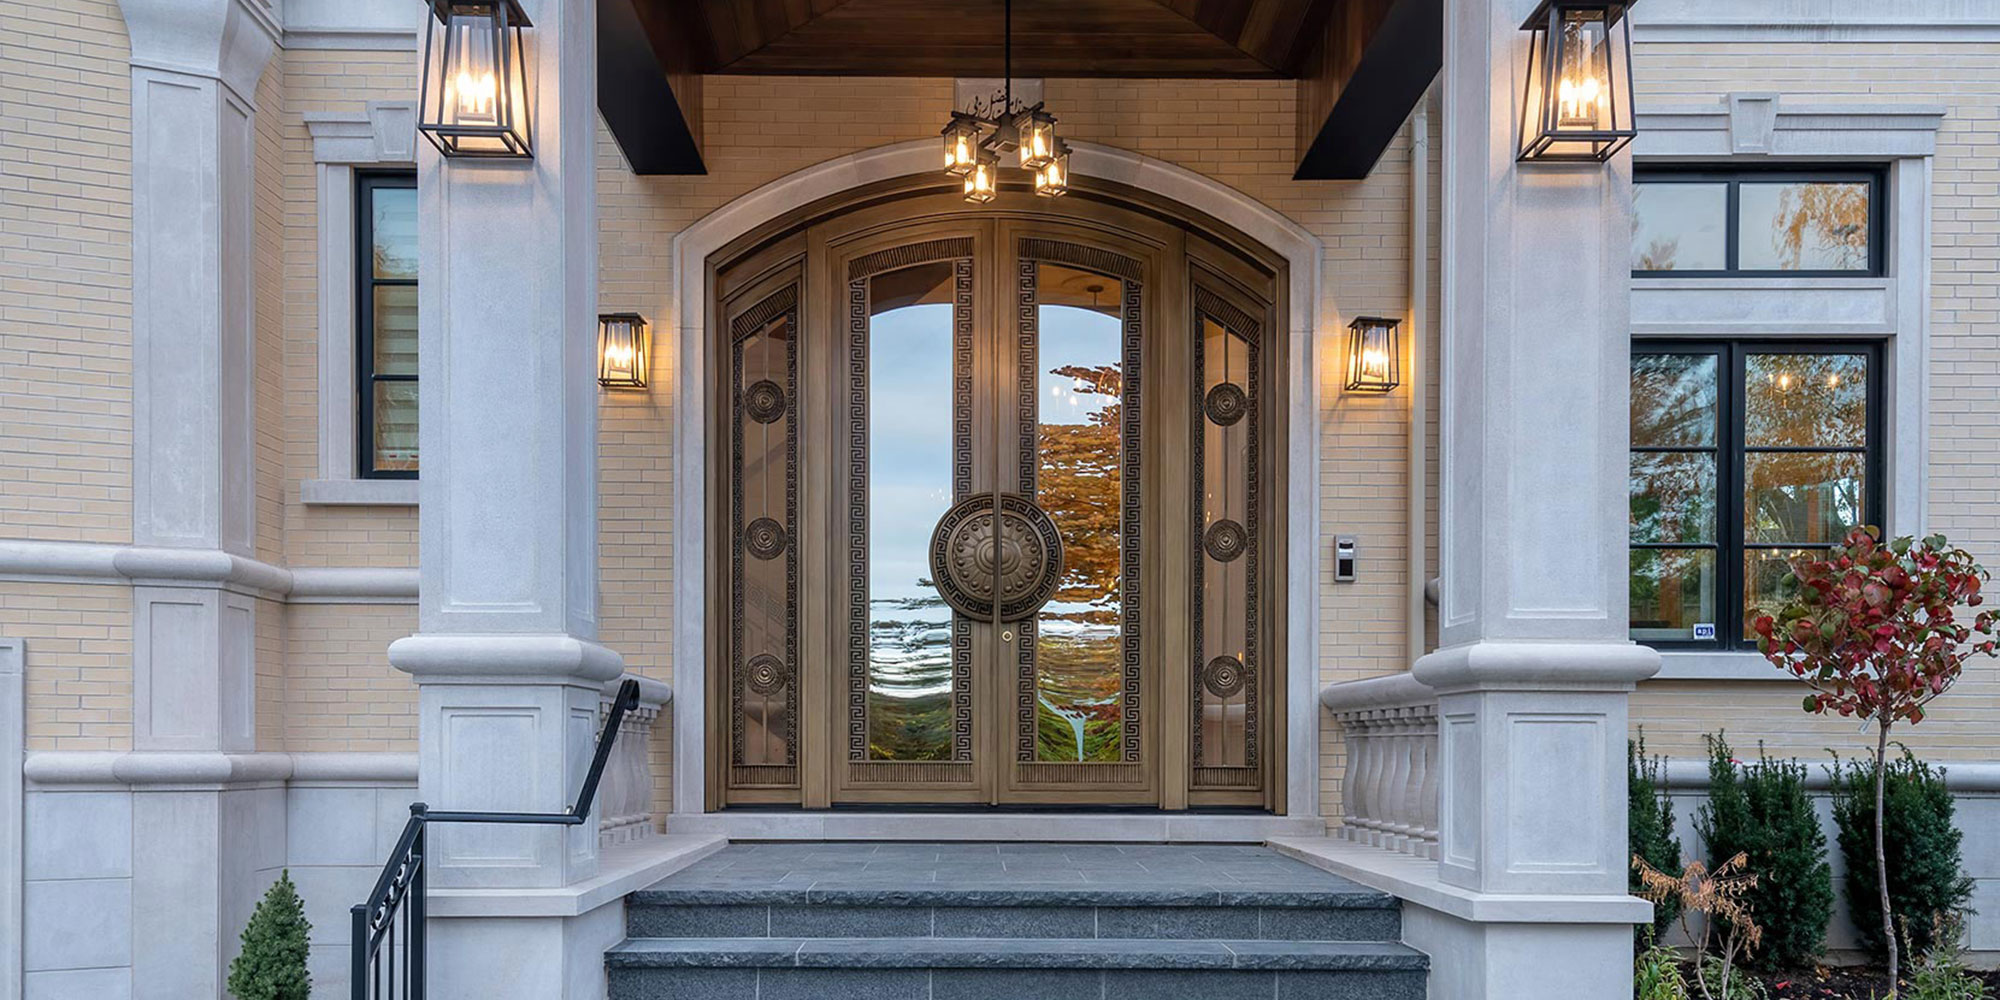 Custom Exterior Metal Doors That Add Curb Appeal to Your Property